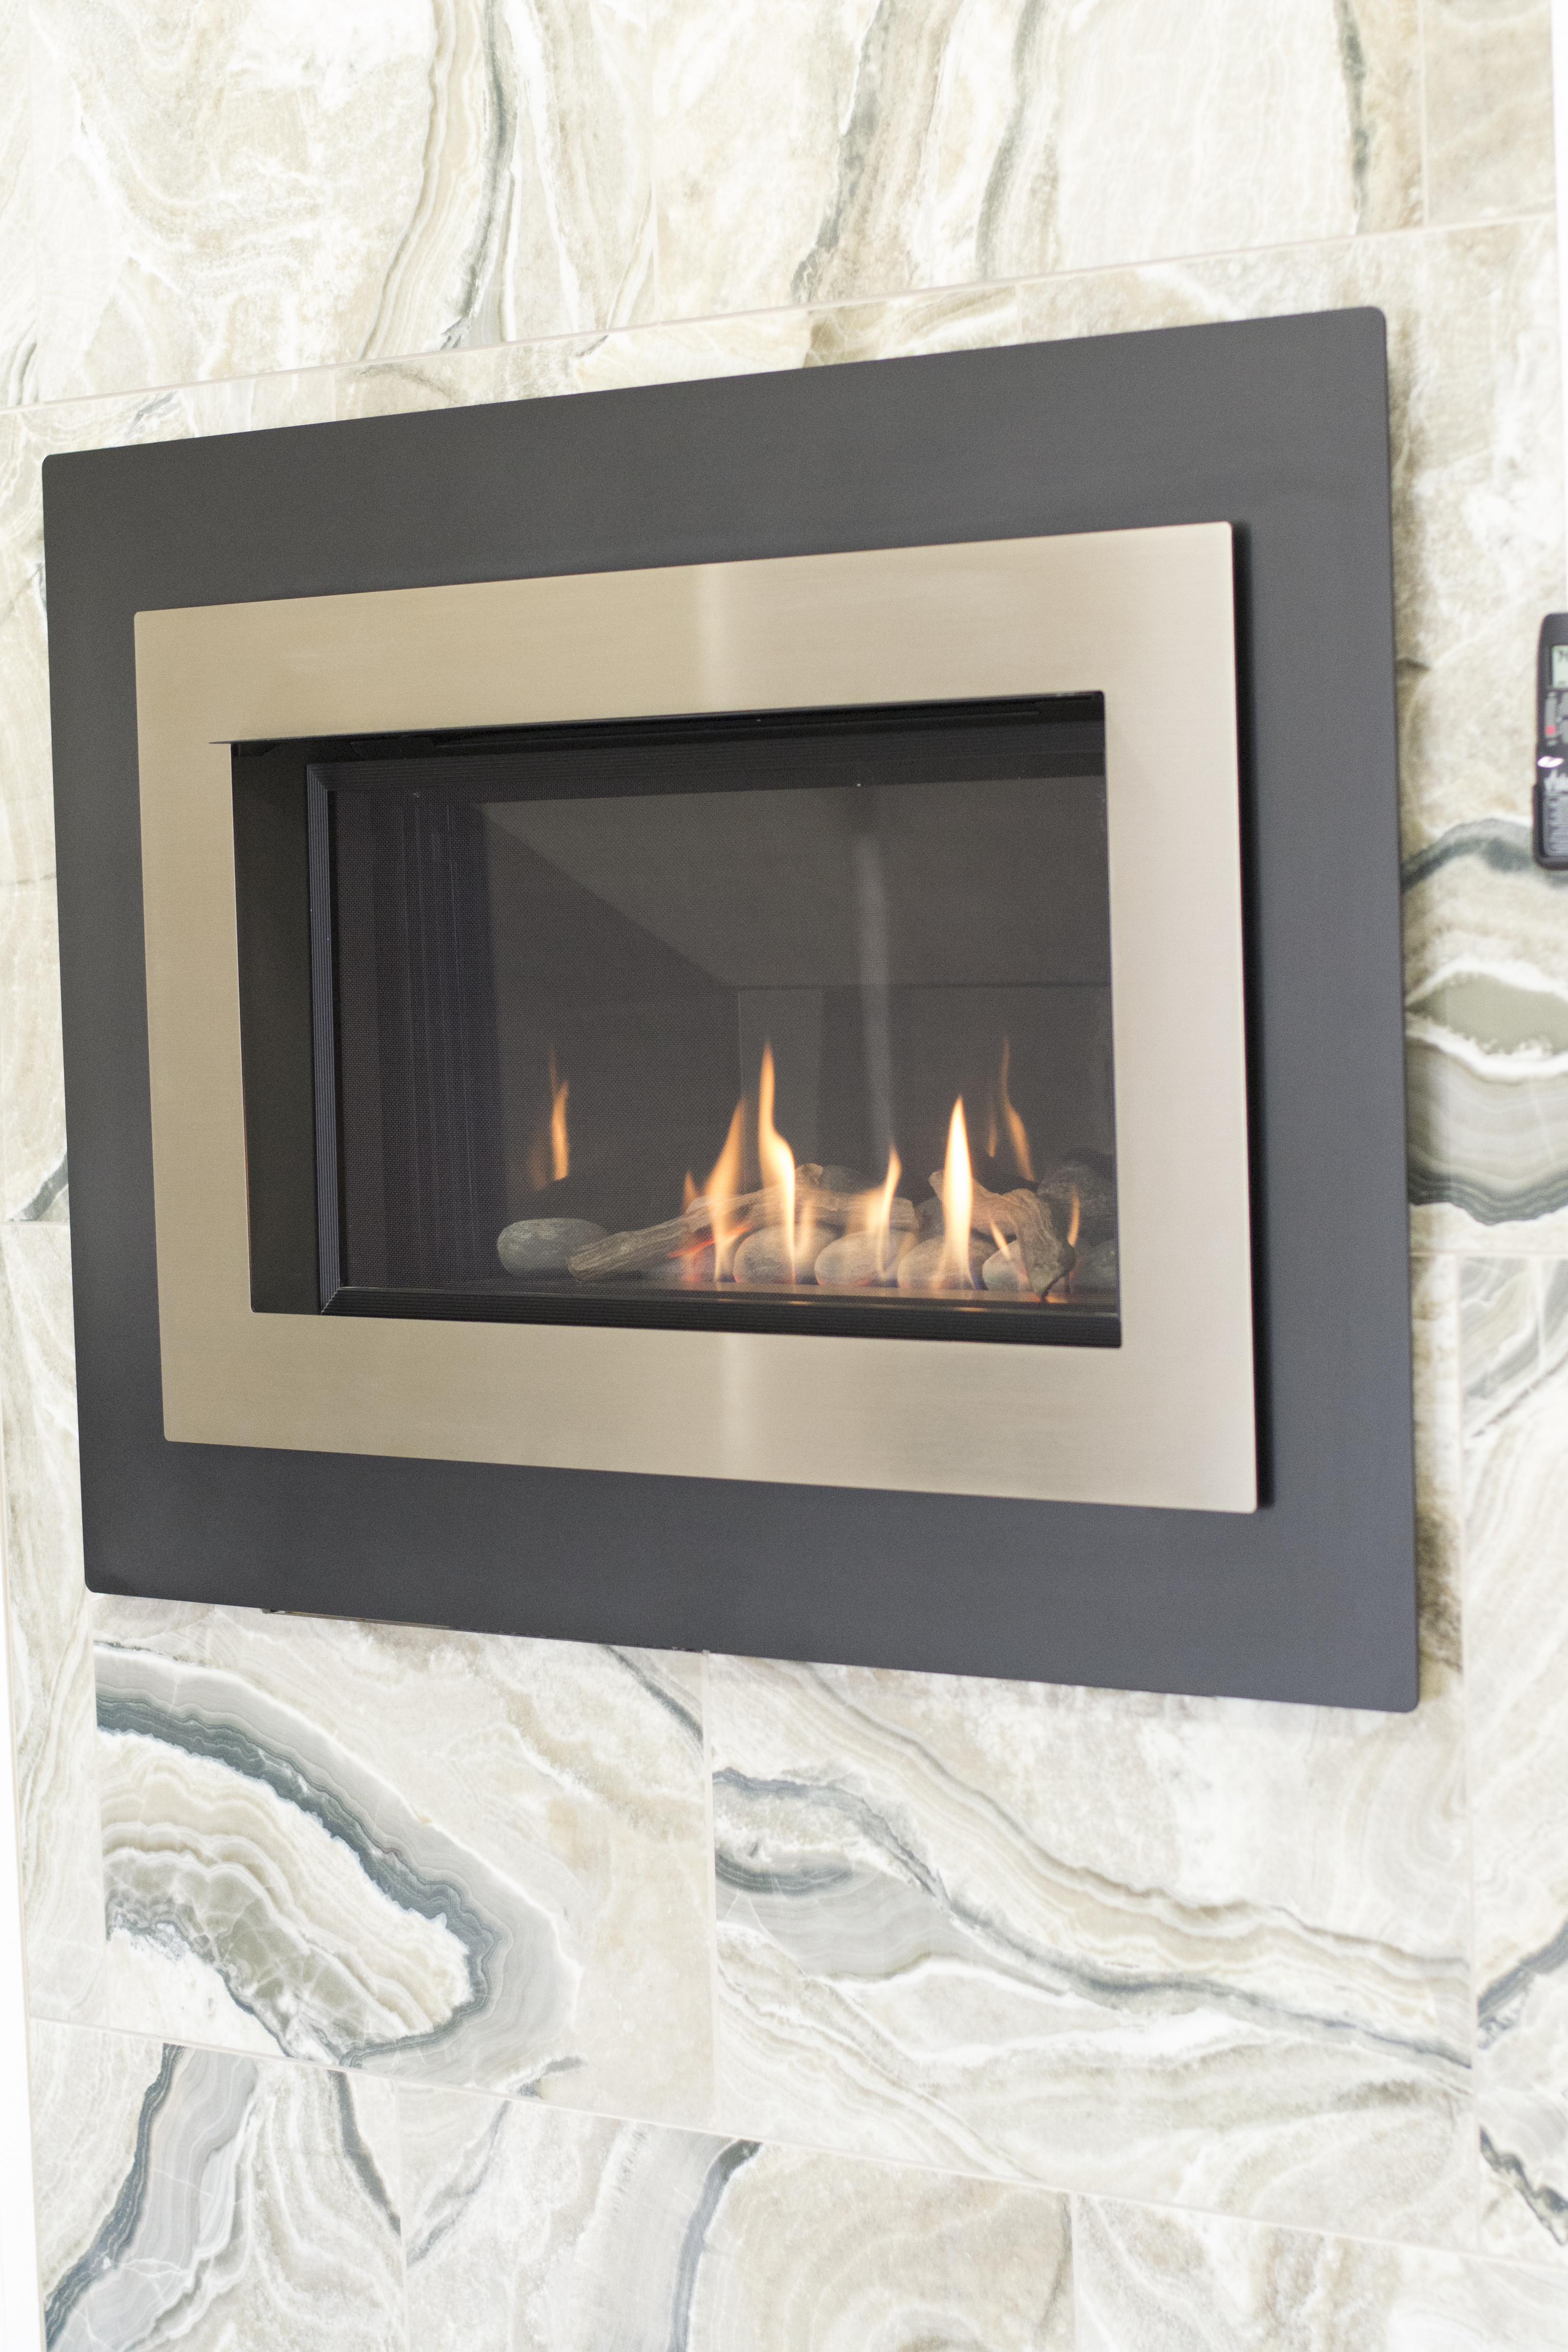 fireplace coal arch gas windsor inserts with fire pin and radiant insert installed valor